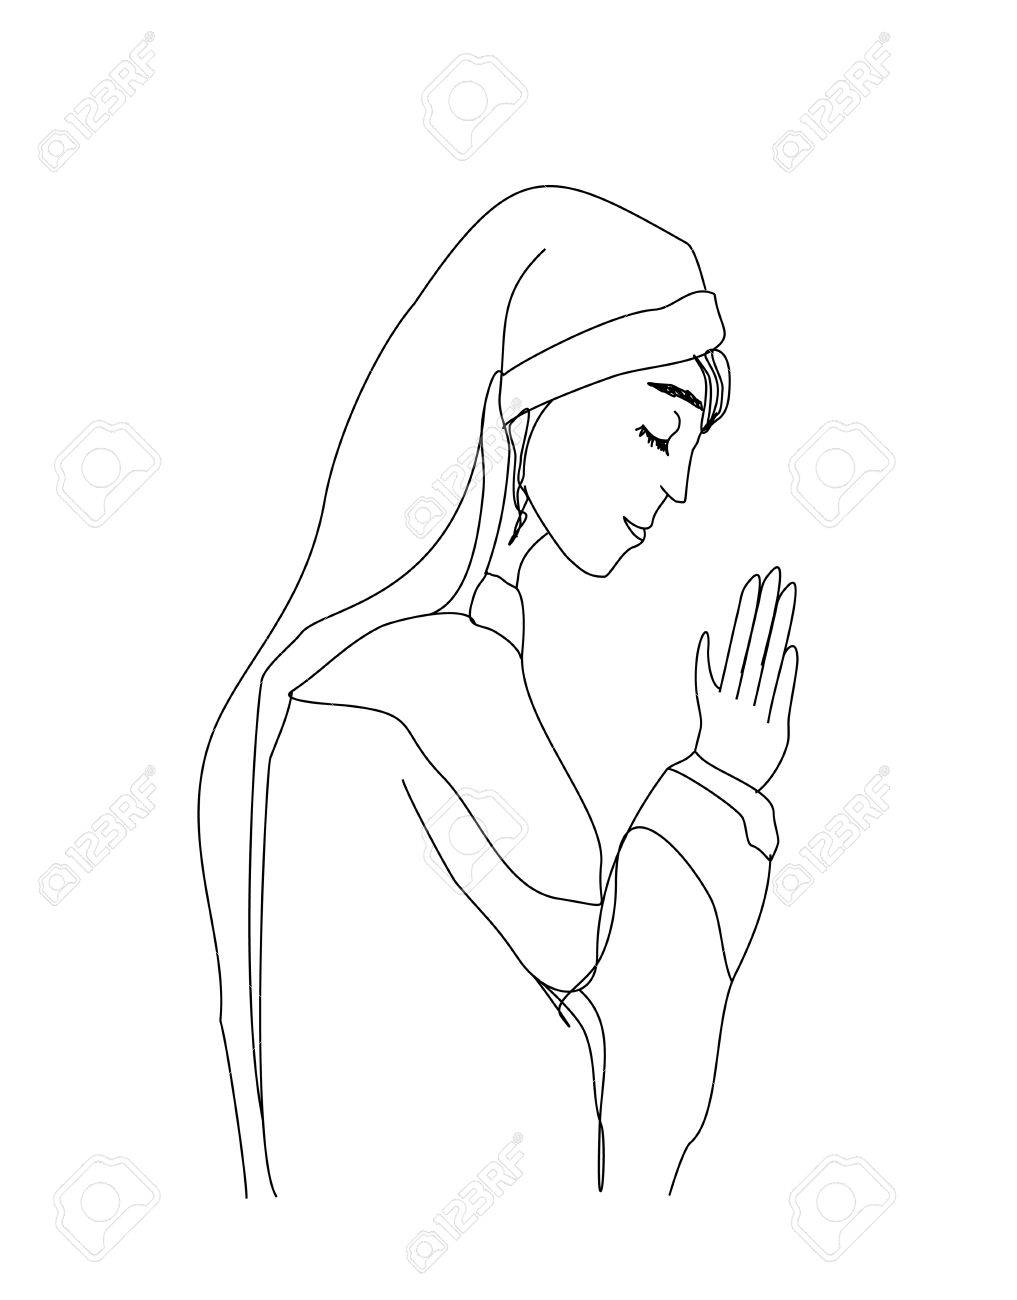 Nun clipart black and white 9 » Clipart Station.